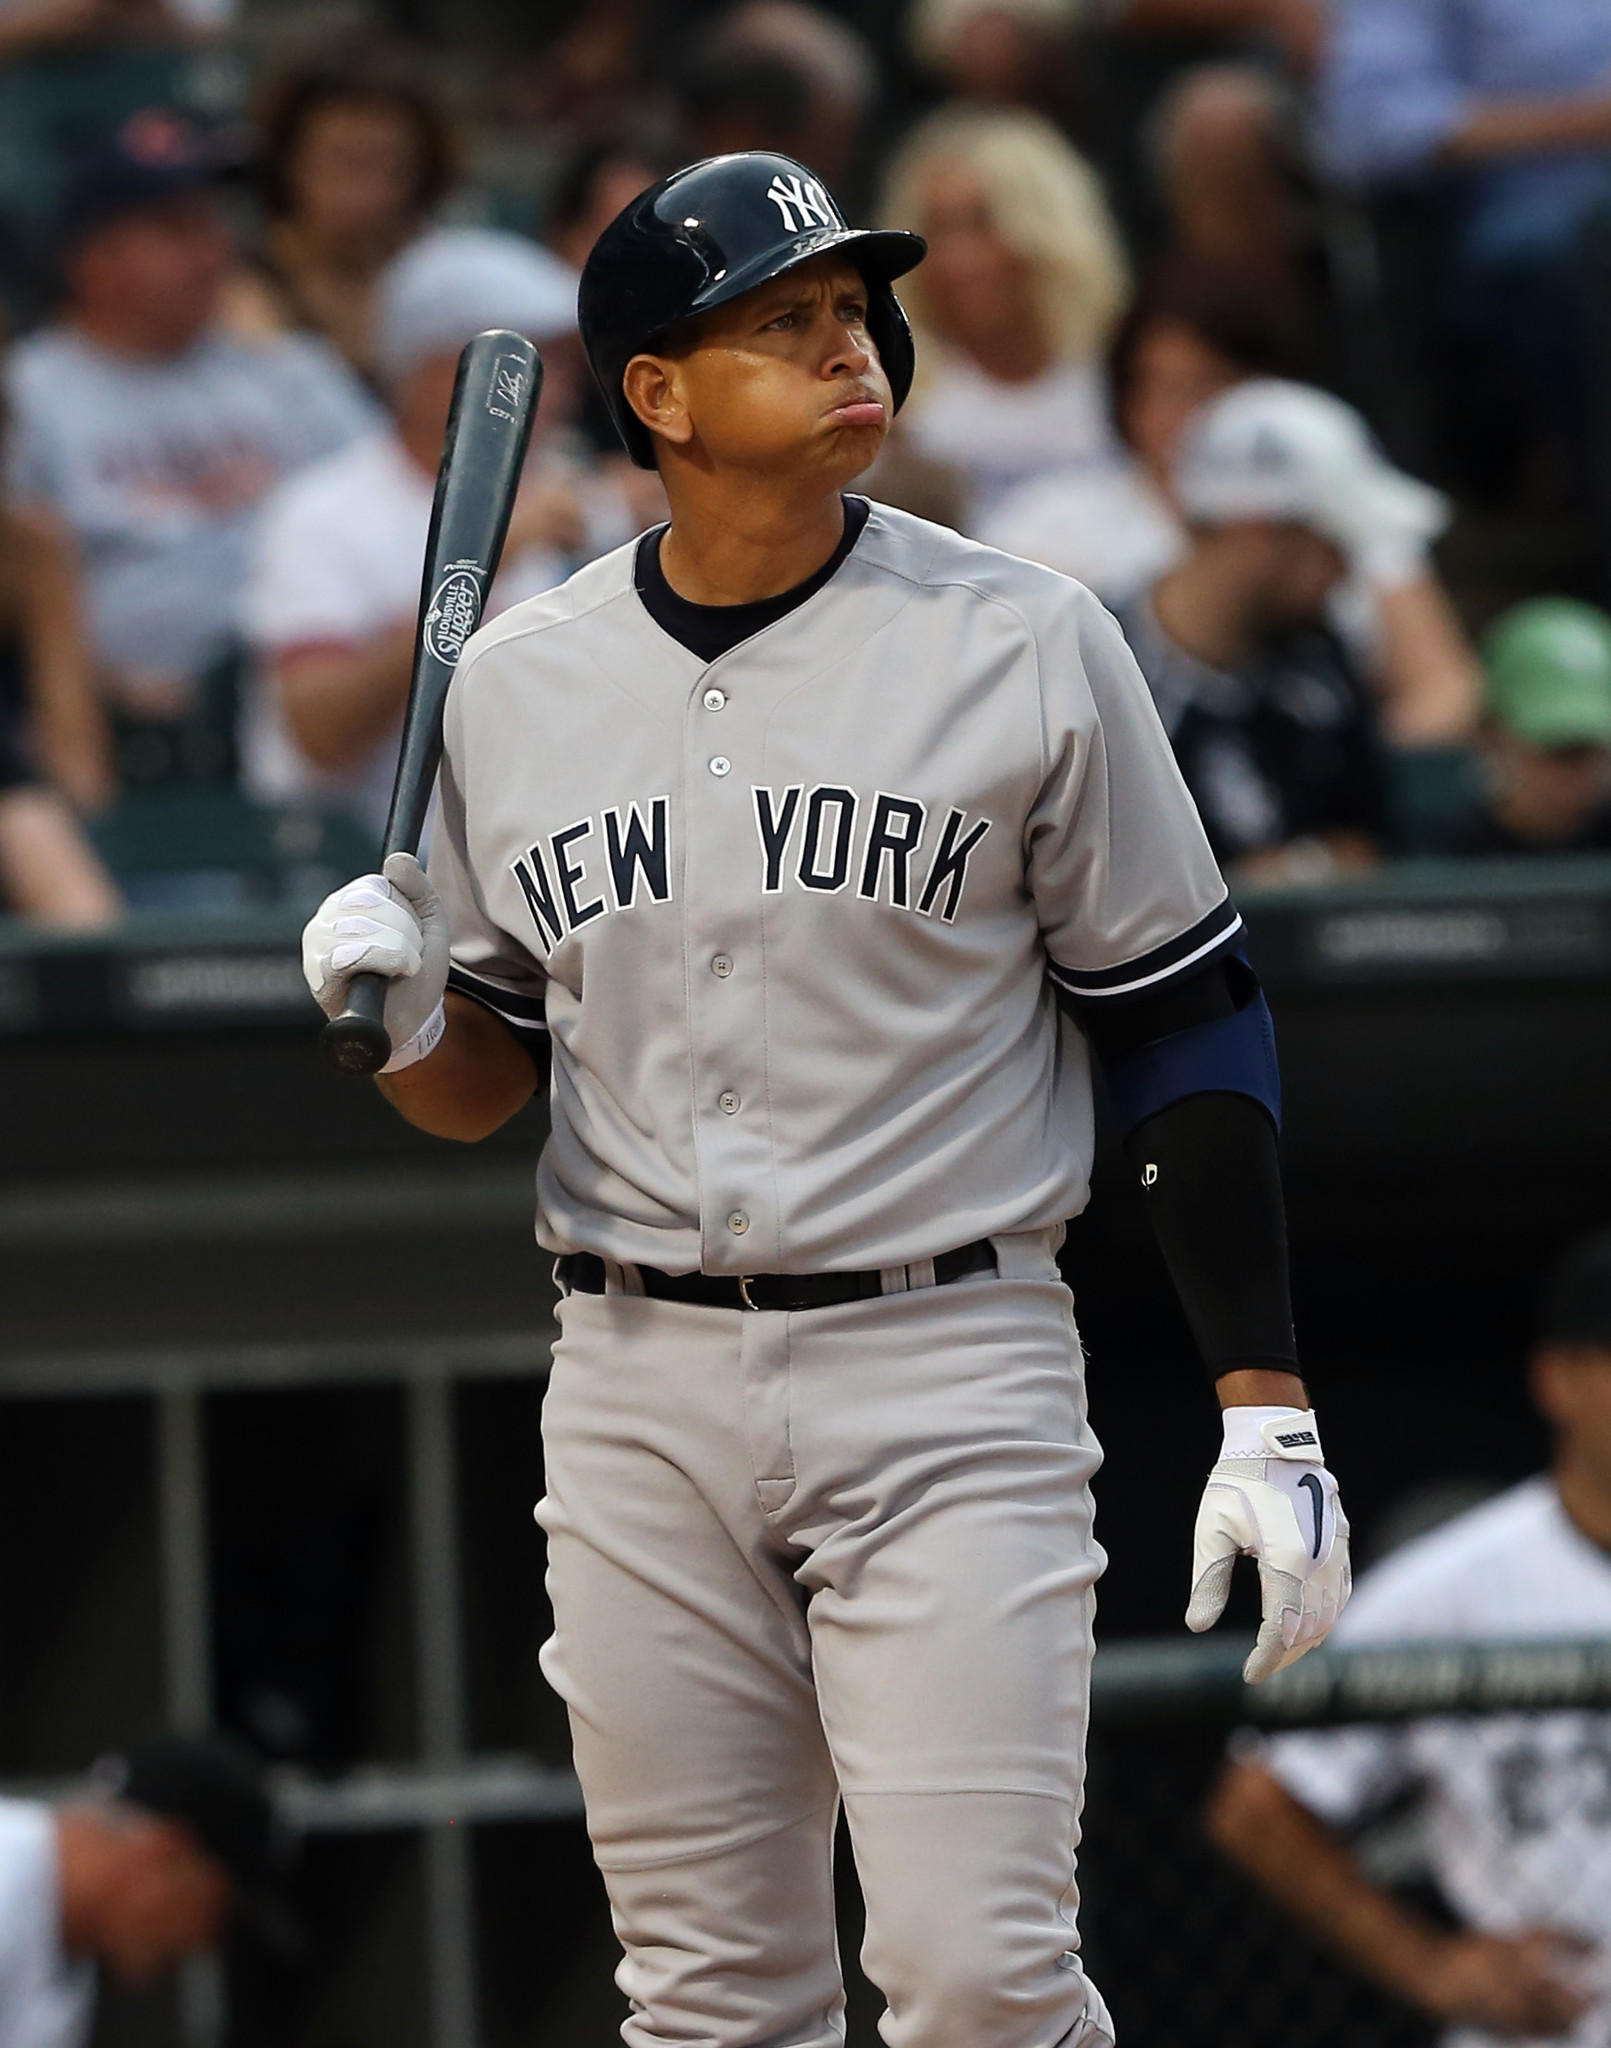 New York Yankees third baseman Alex Rodriguez has been suspended for the 2014 season.